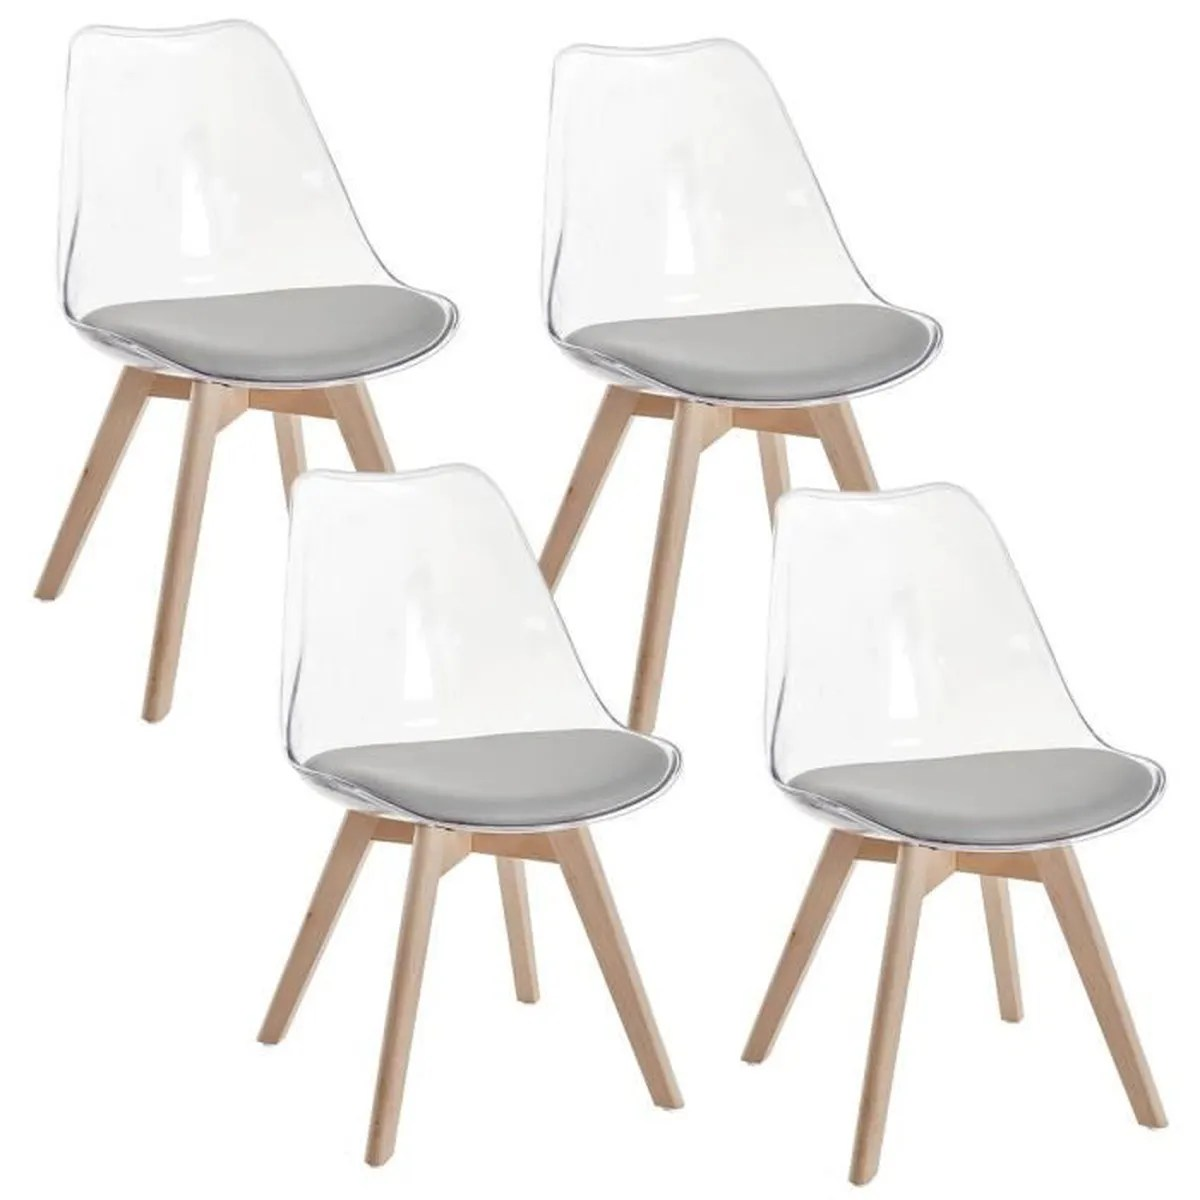 Lot 4 Chaises Transparentes Lot De 4 Chaises Scandinaves Transparentes Gris Gala Achat